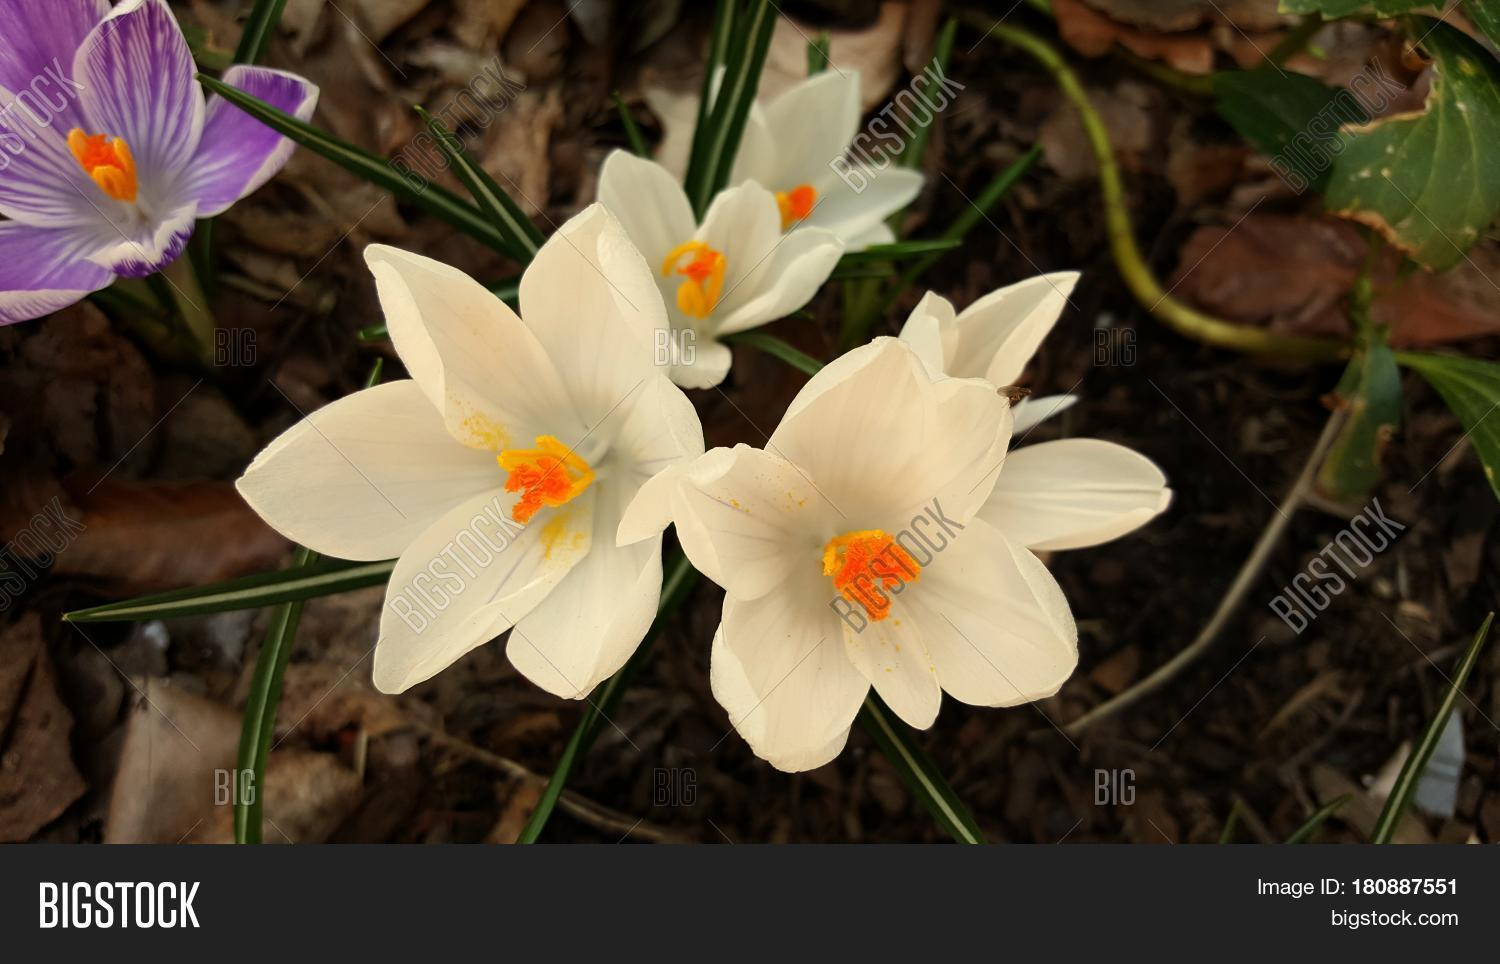 Crocus flowers white image photo free trial bigstock crocus flowers white blooming in early spring macro up close beautiful lovely mightylinksfo